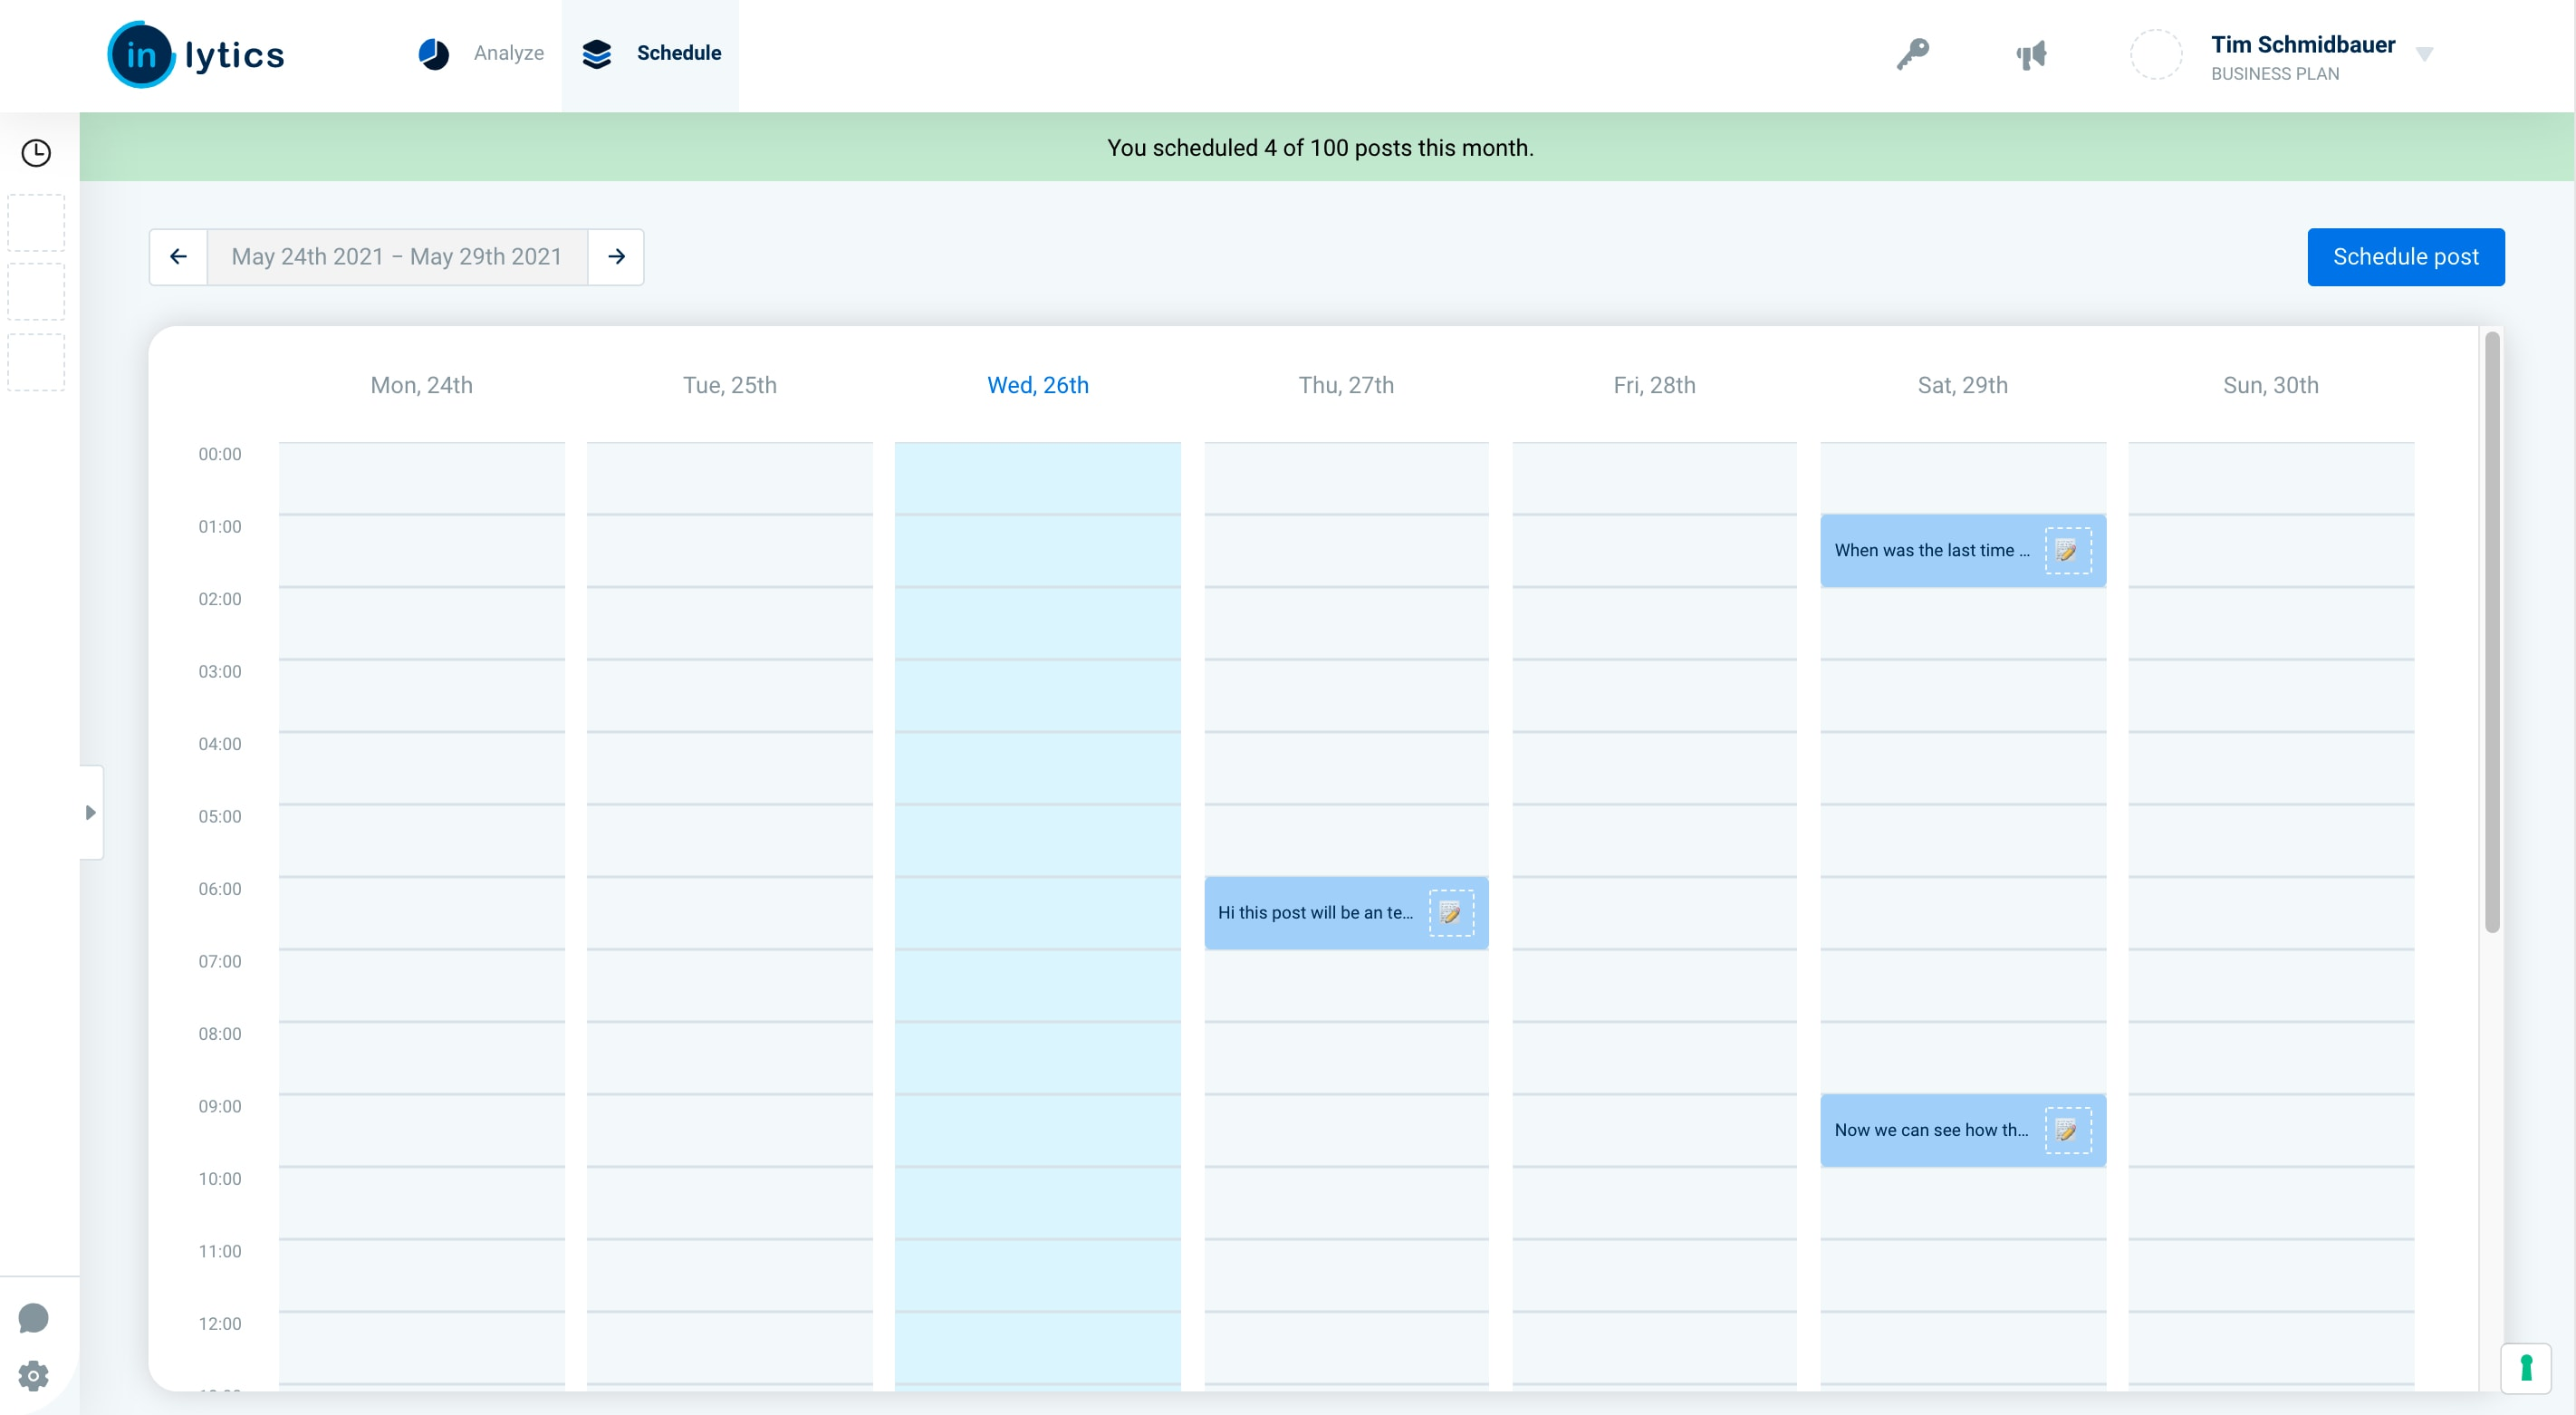 LinkedIn Analytics Tool inlytics with content scheduling feature